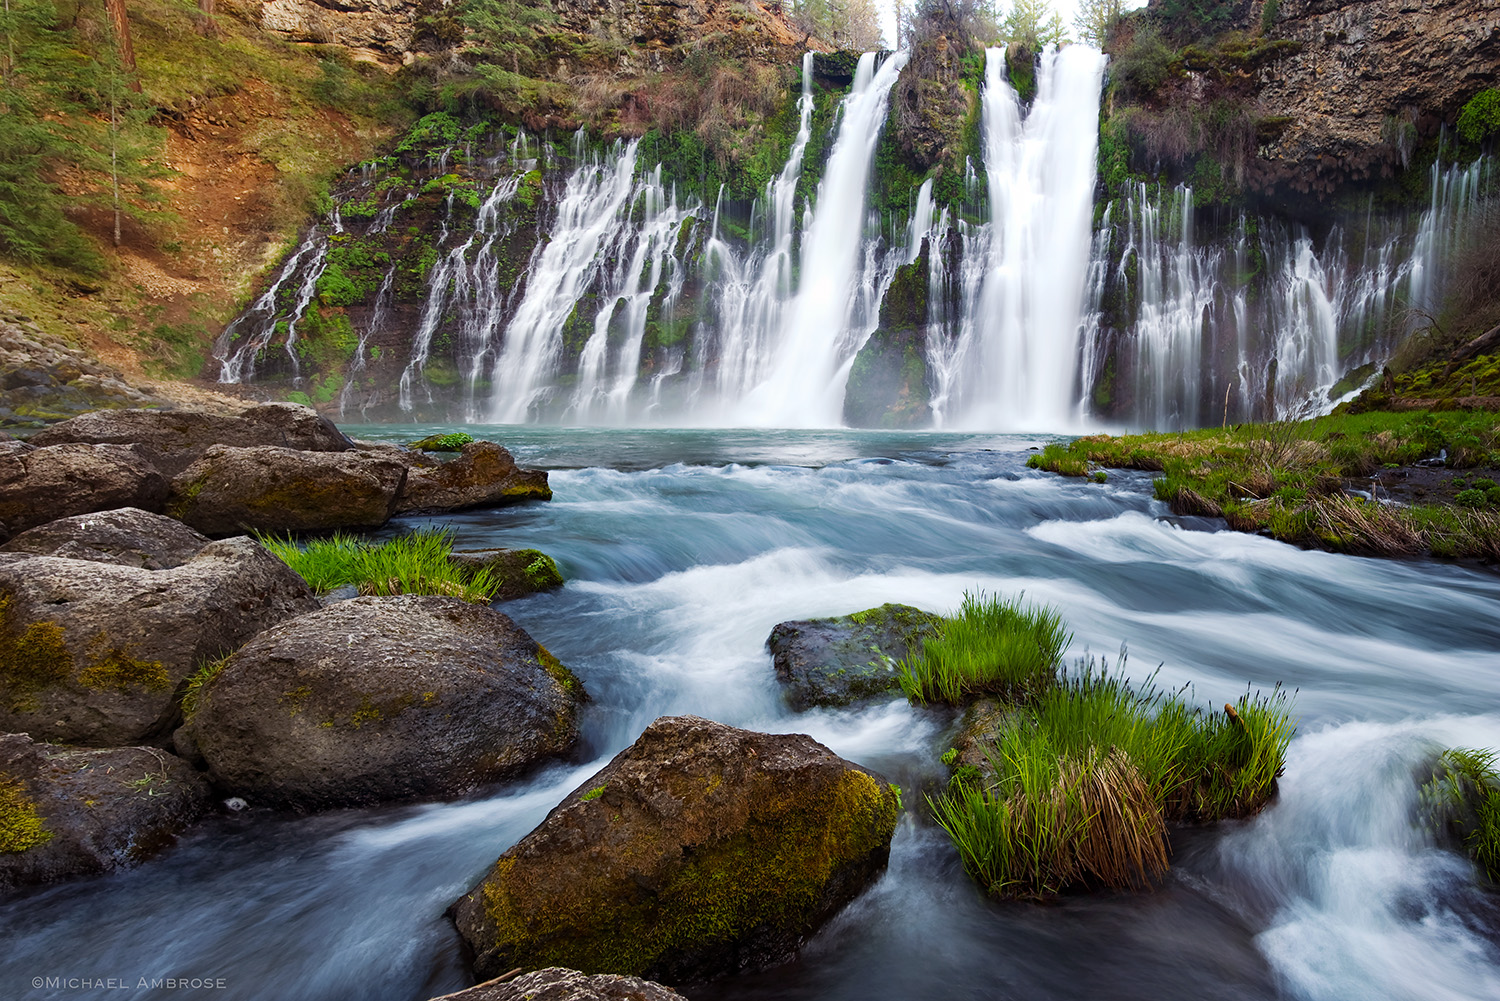 McArthur Burney Falls is a spectacular waterfall in Shasta County, California